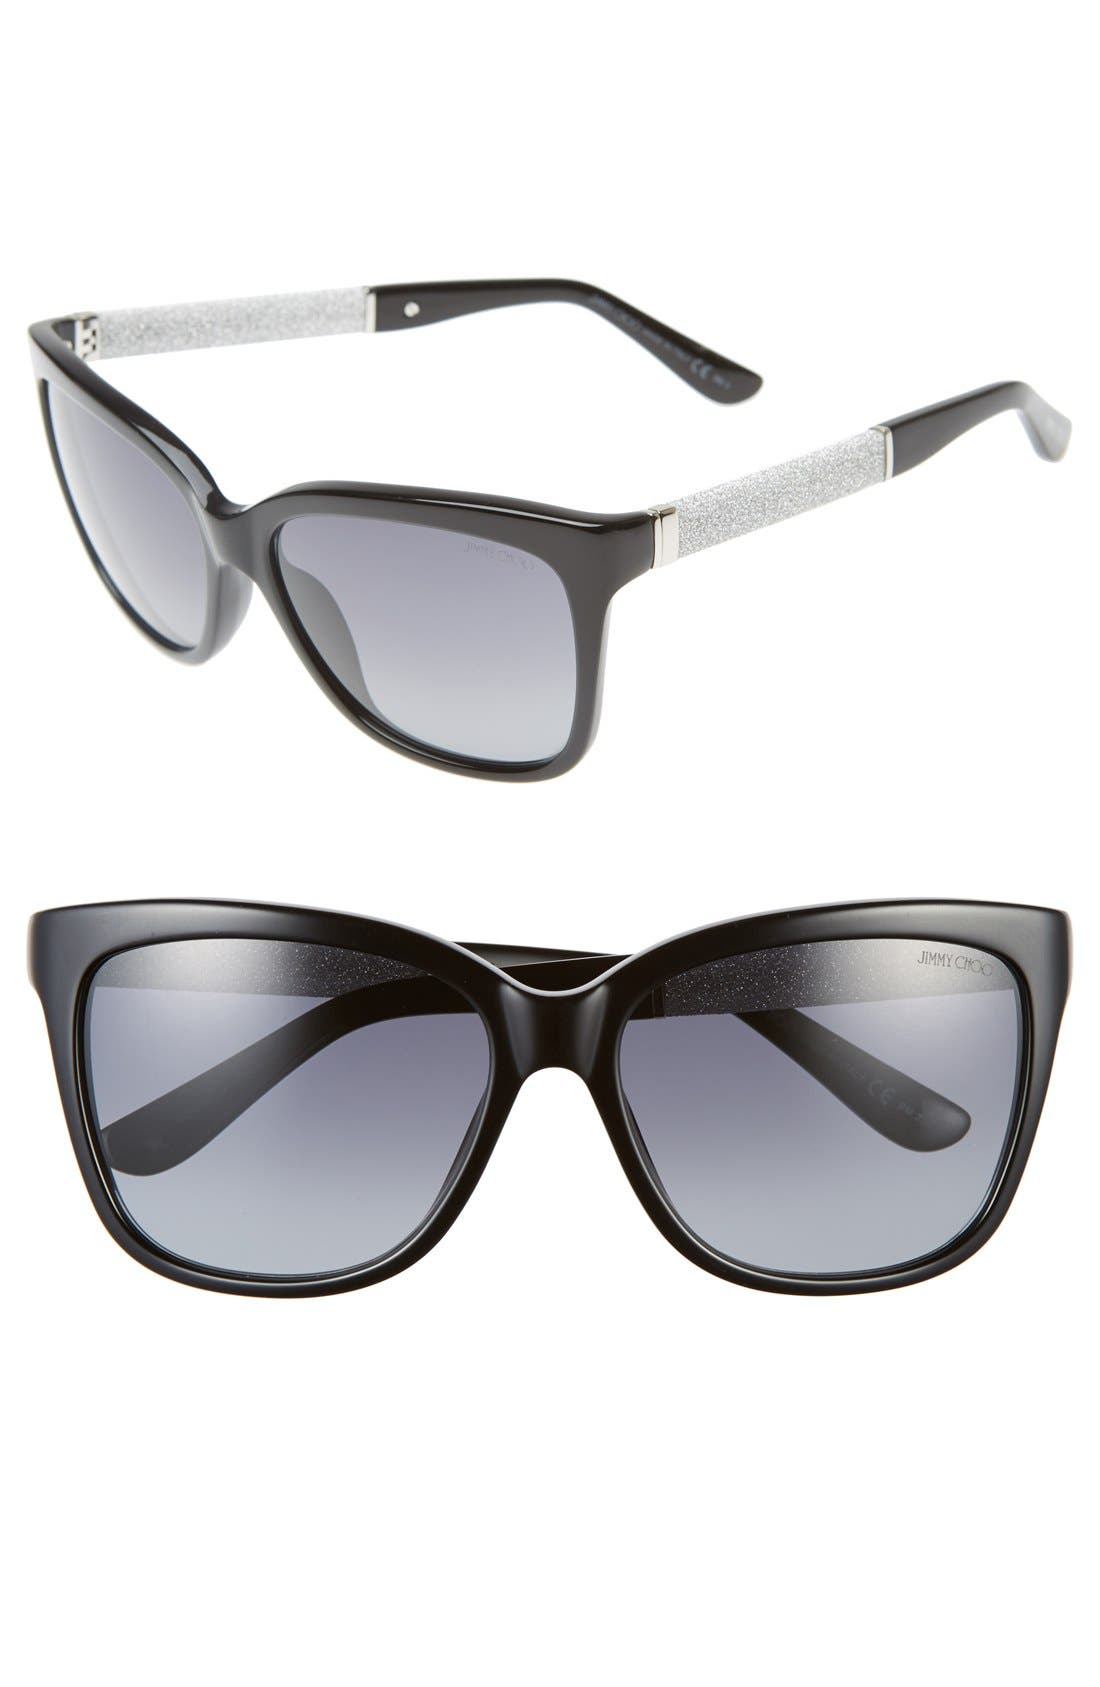 Alternate Image 1 Selected - Jimmy Choo 'Coras' 56mm Retro Sunglasses